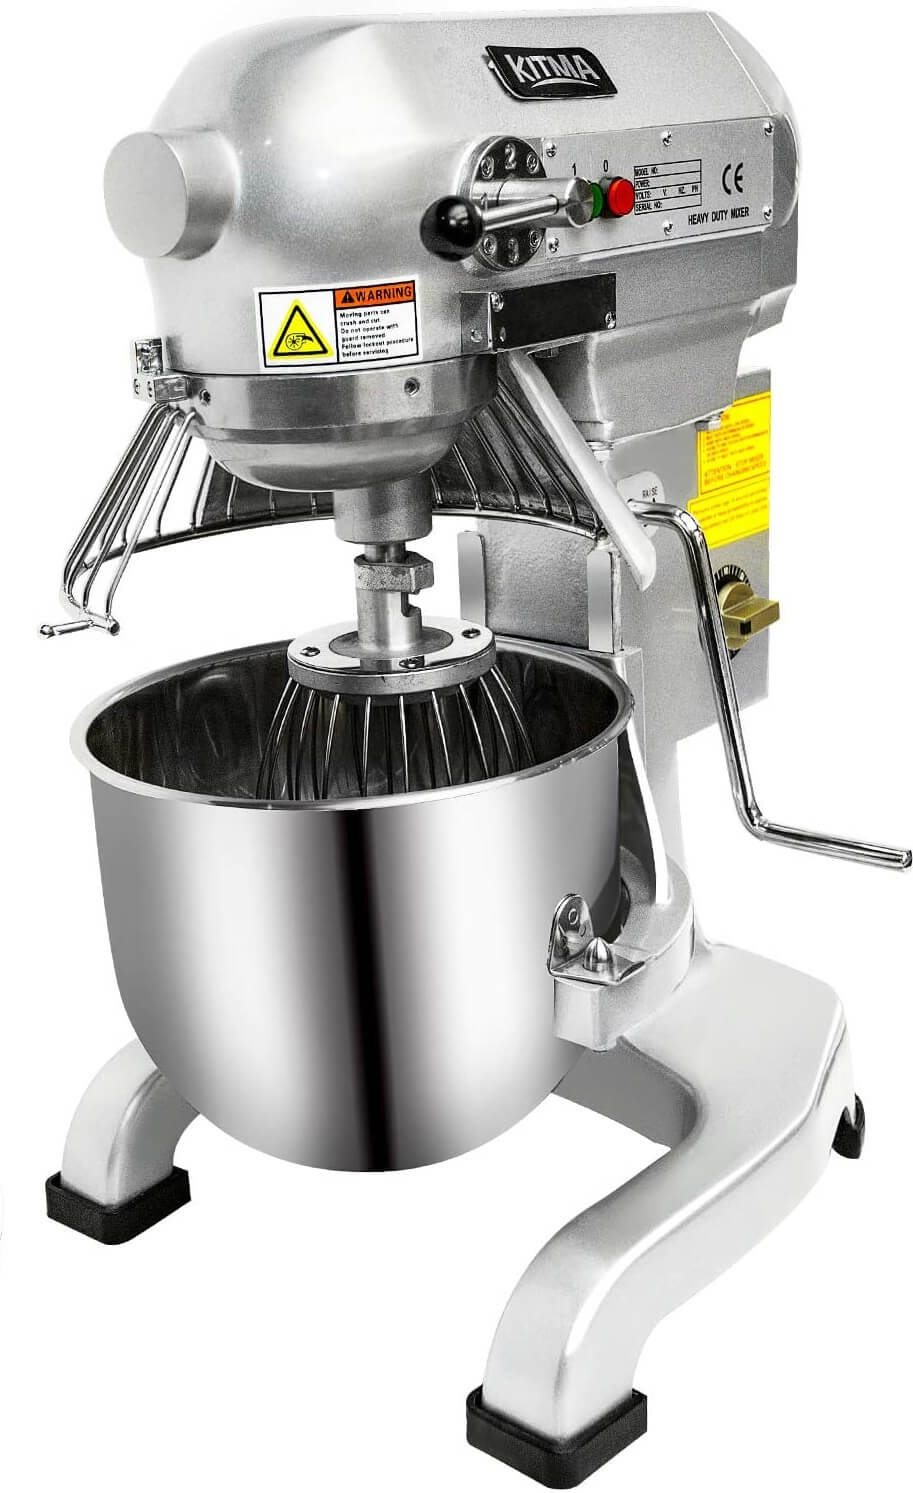 KITMA Commercial Food Mixer